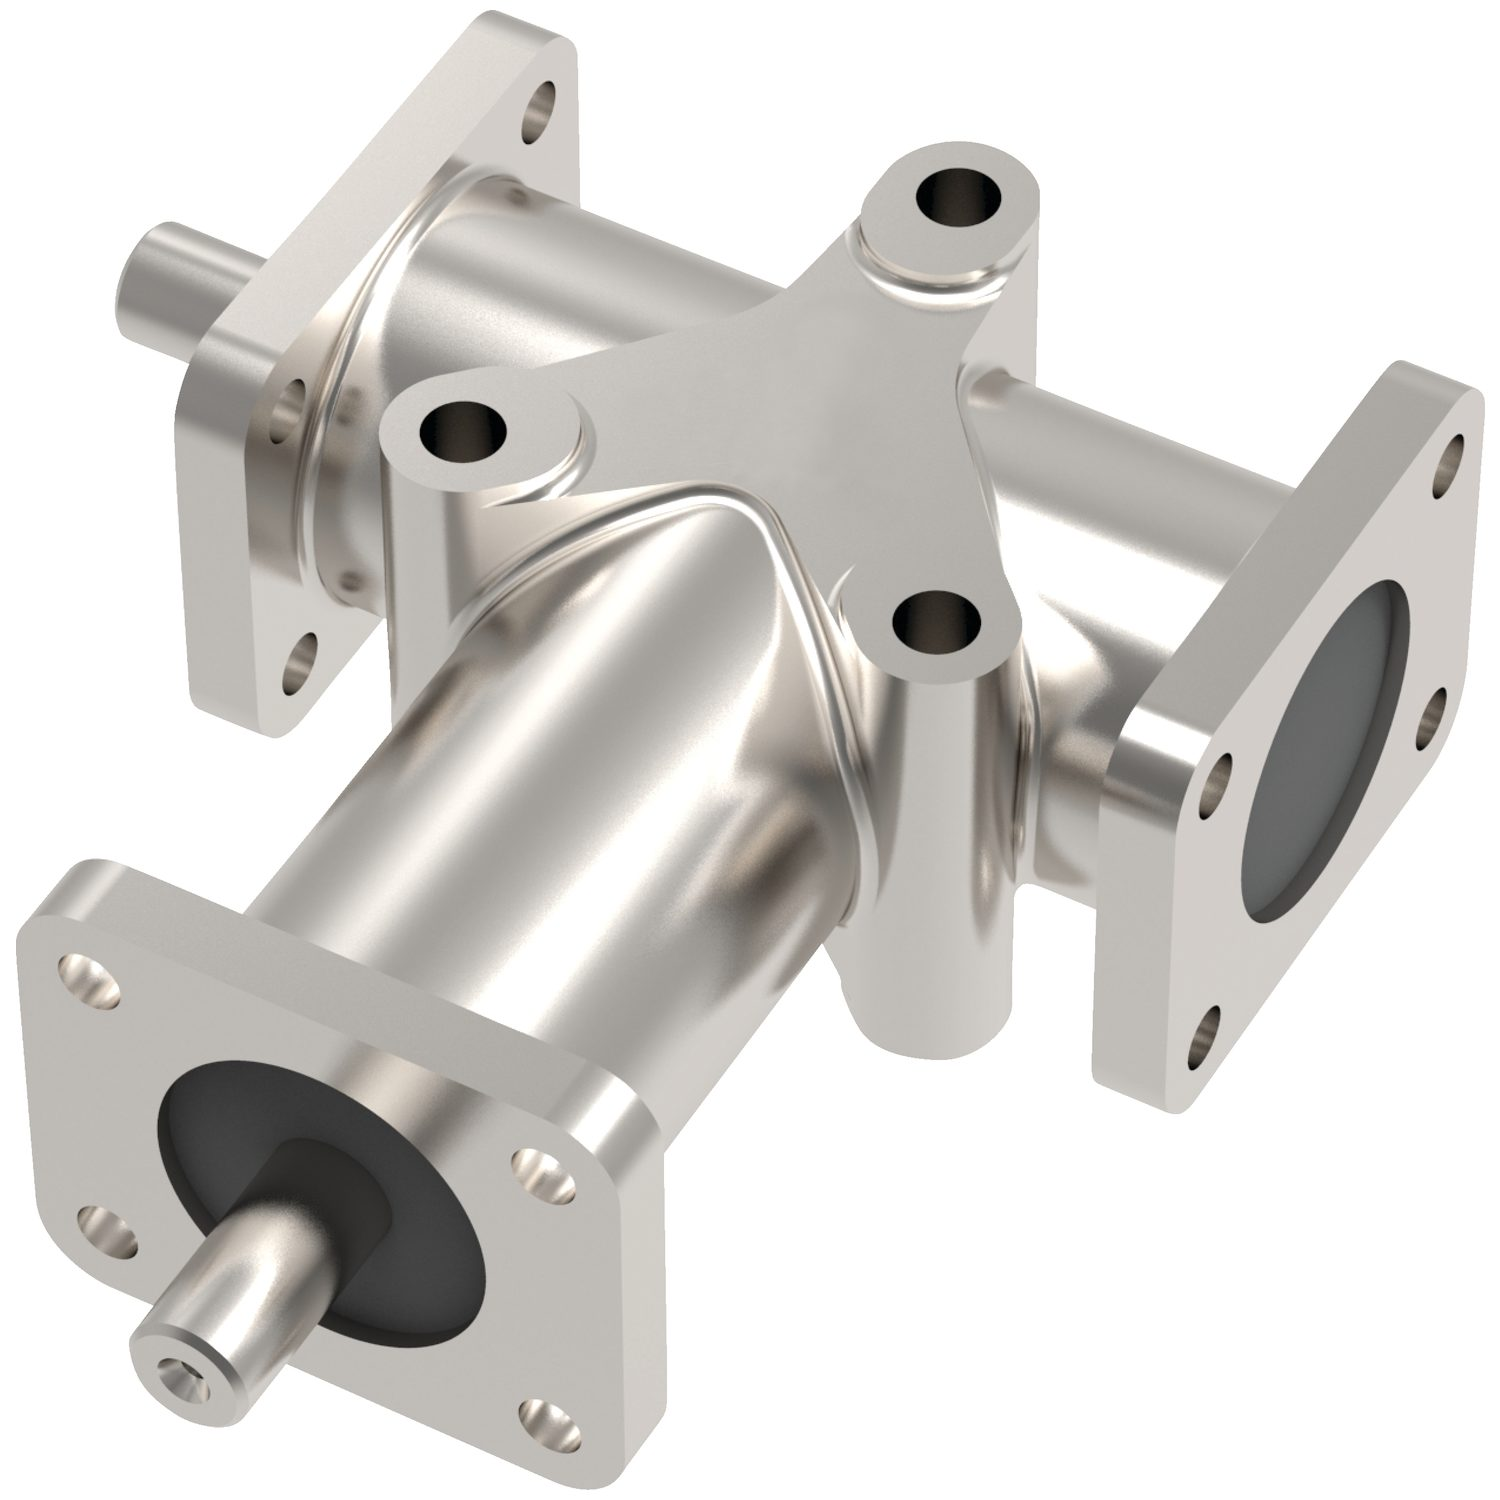 R2350 - Stainless Right Angle Drives - 2 Shafts